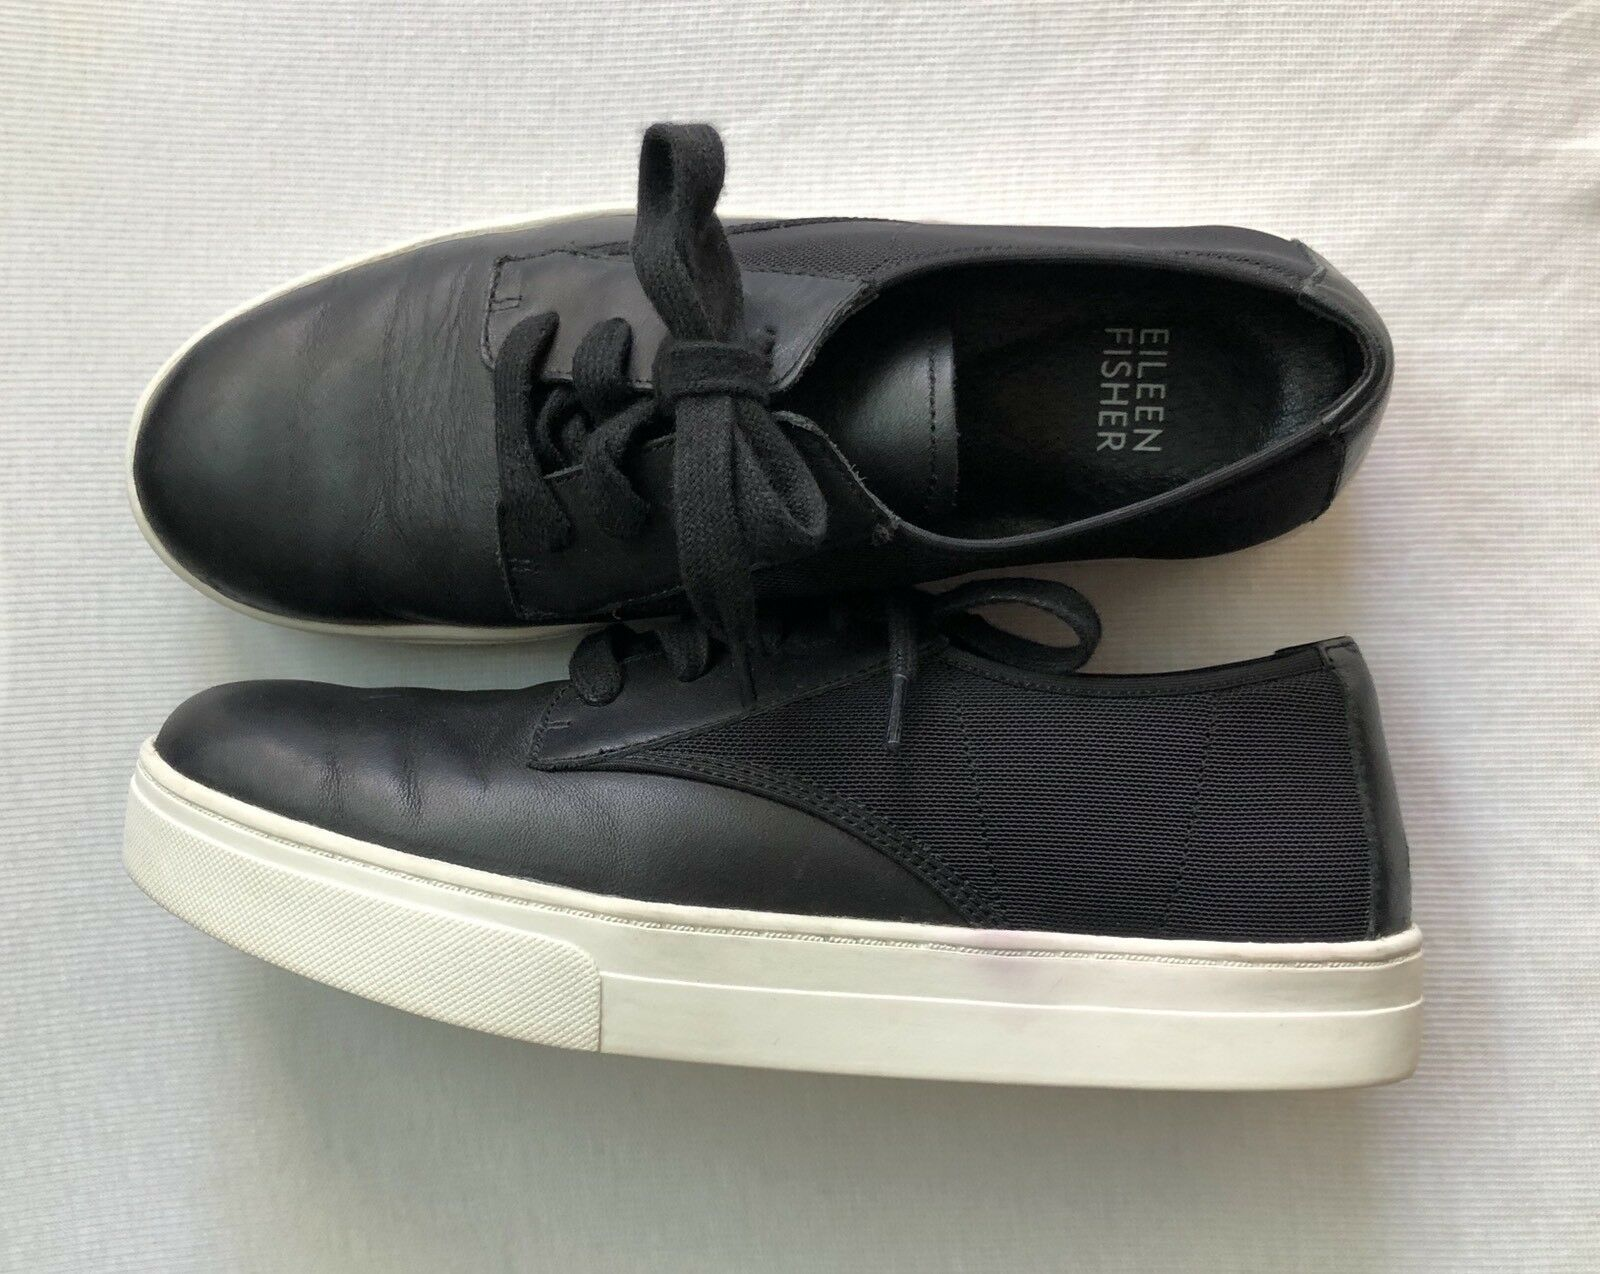 Eileen Fisher Koi Black Black Black Glazed Leather Mesh Ventilation Platform Sneakers Size 6 557b58